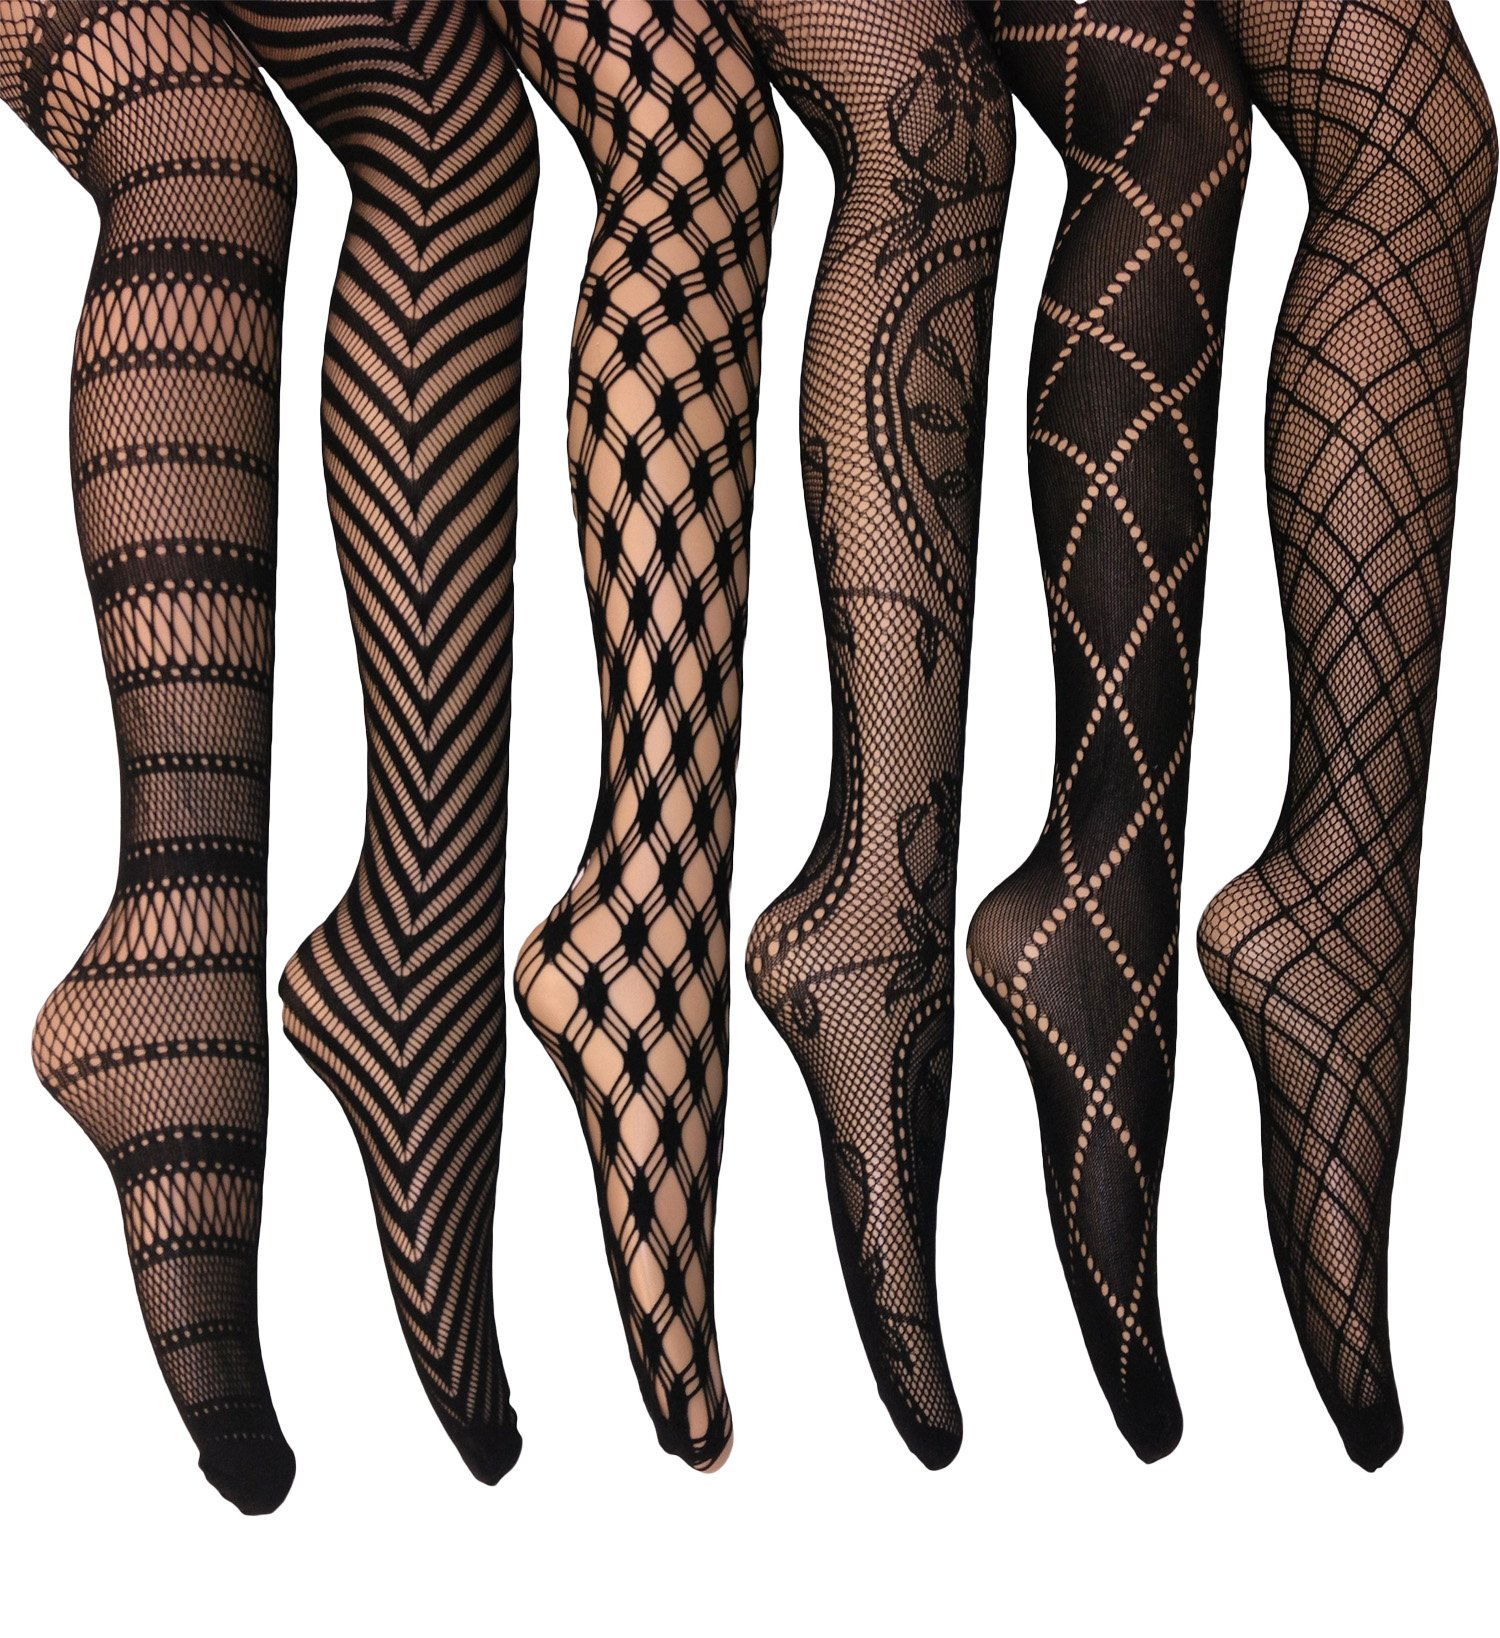 Frenchic Fishnet Lace Stocking Tights Extended Sizes (Pack of 6) (S/M), Black